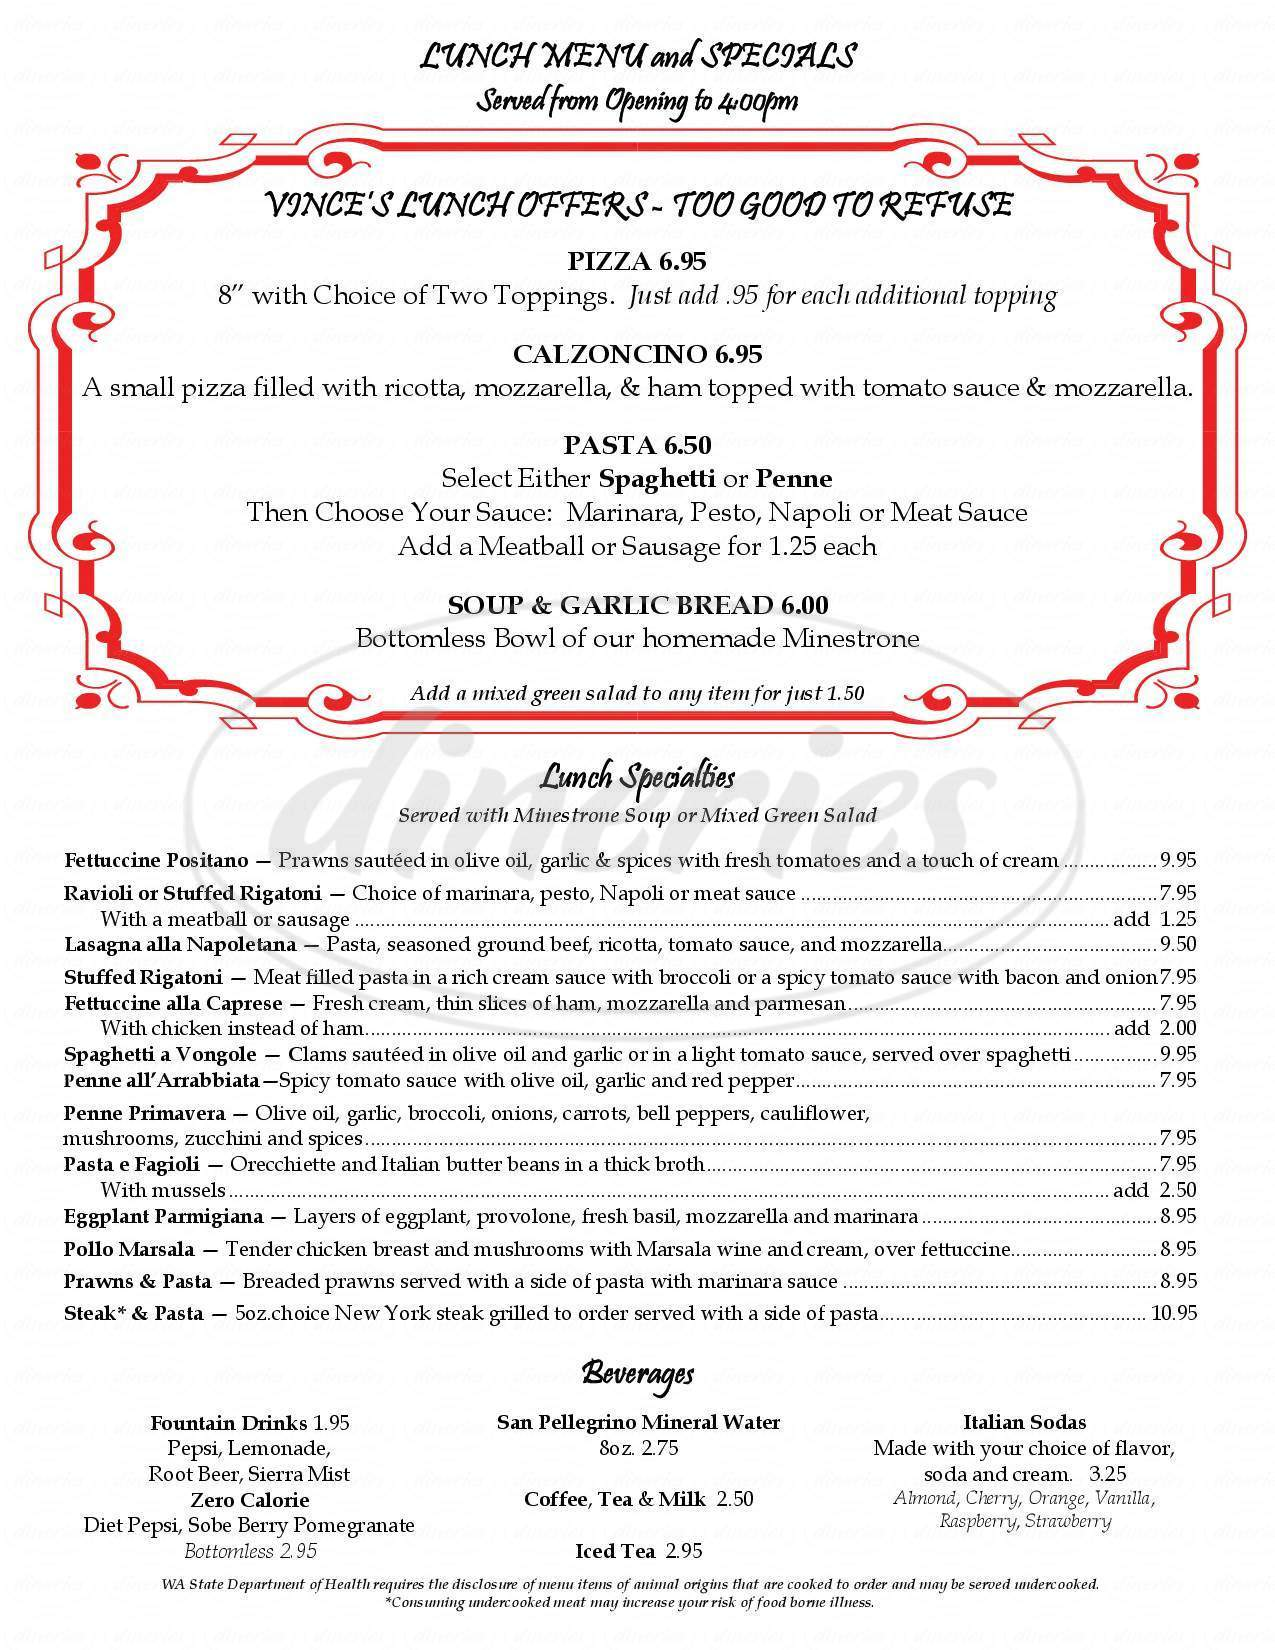 menu for Vince's Italian Restaurant & Pizzeria